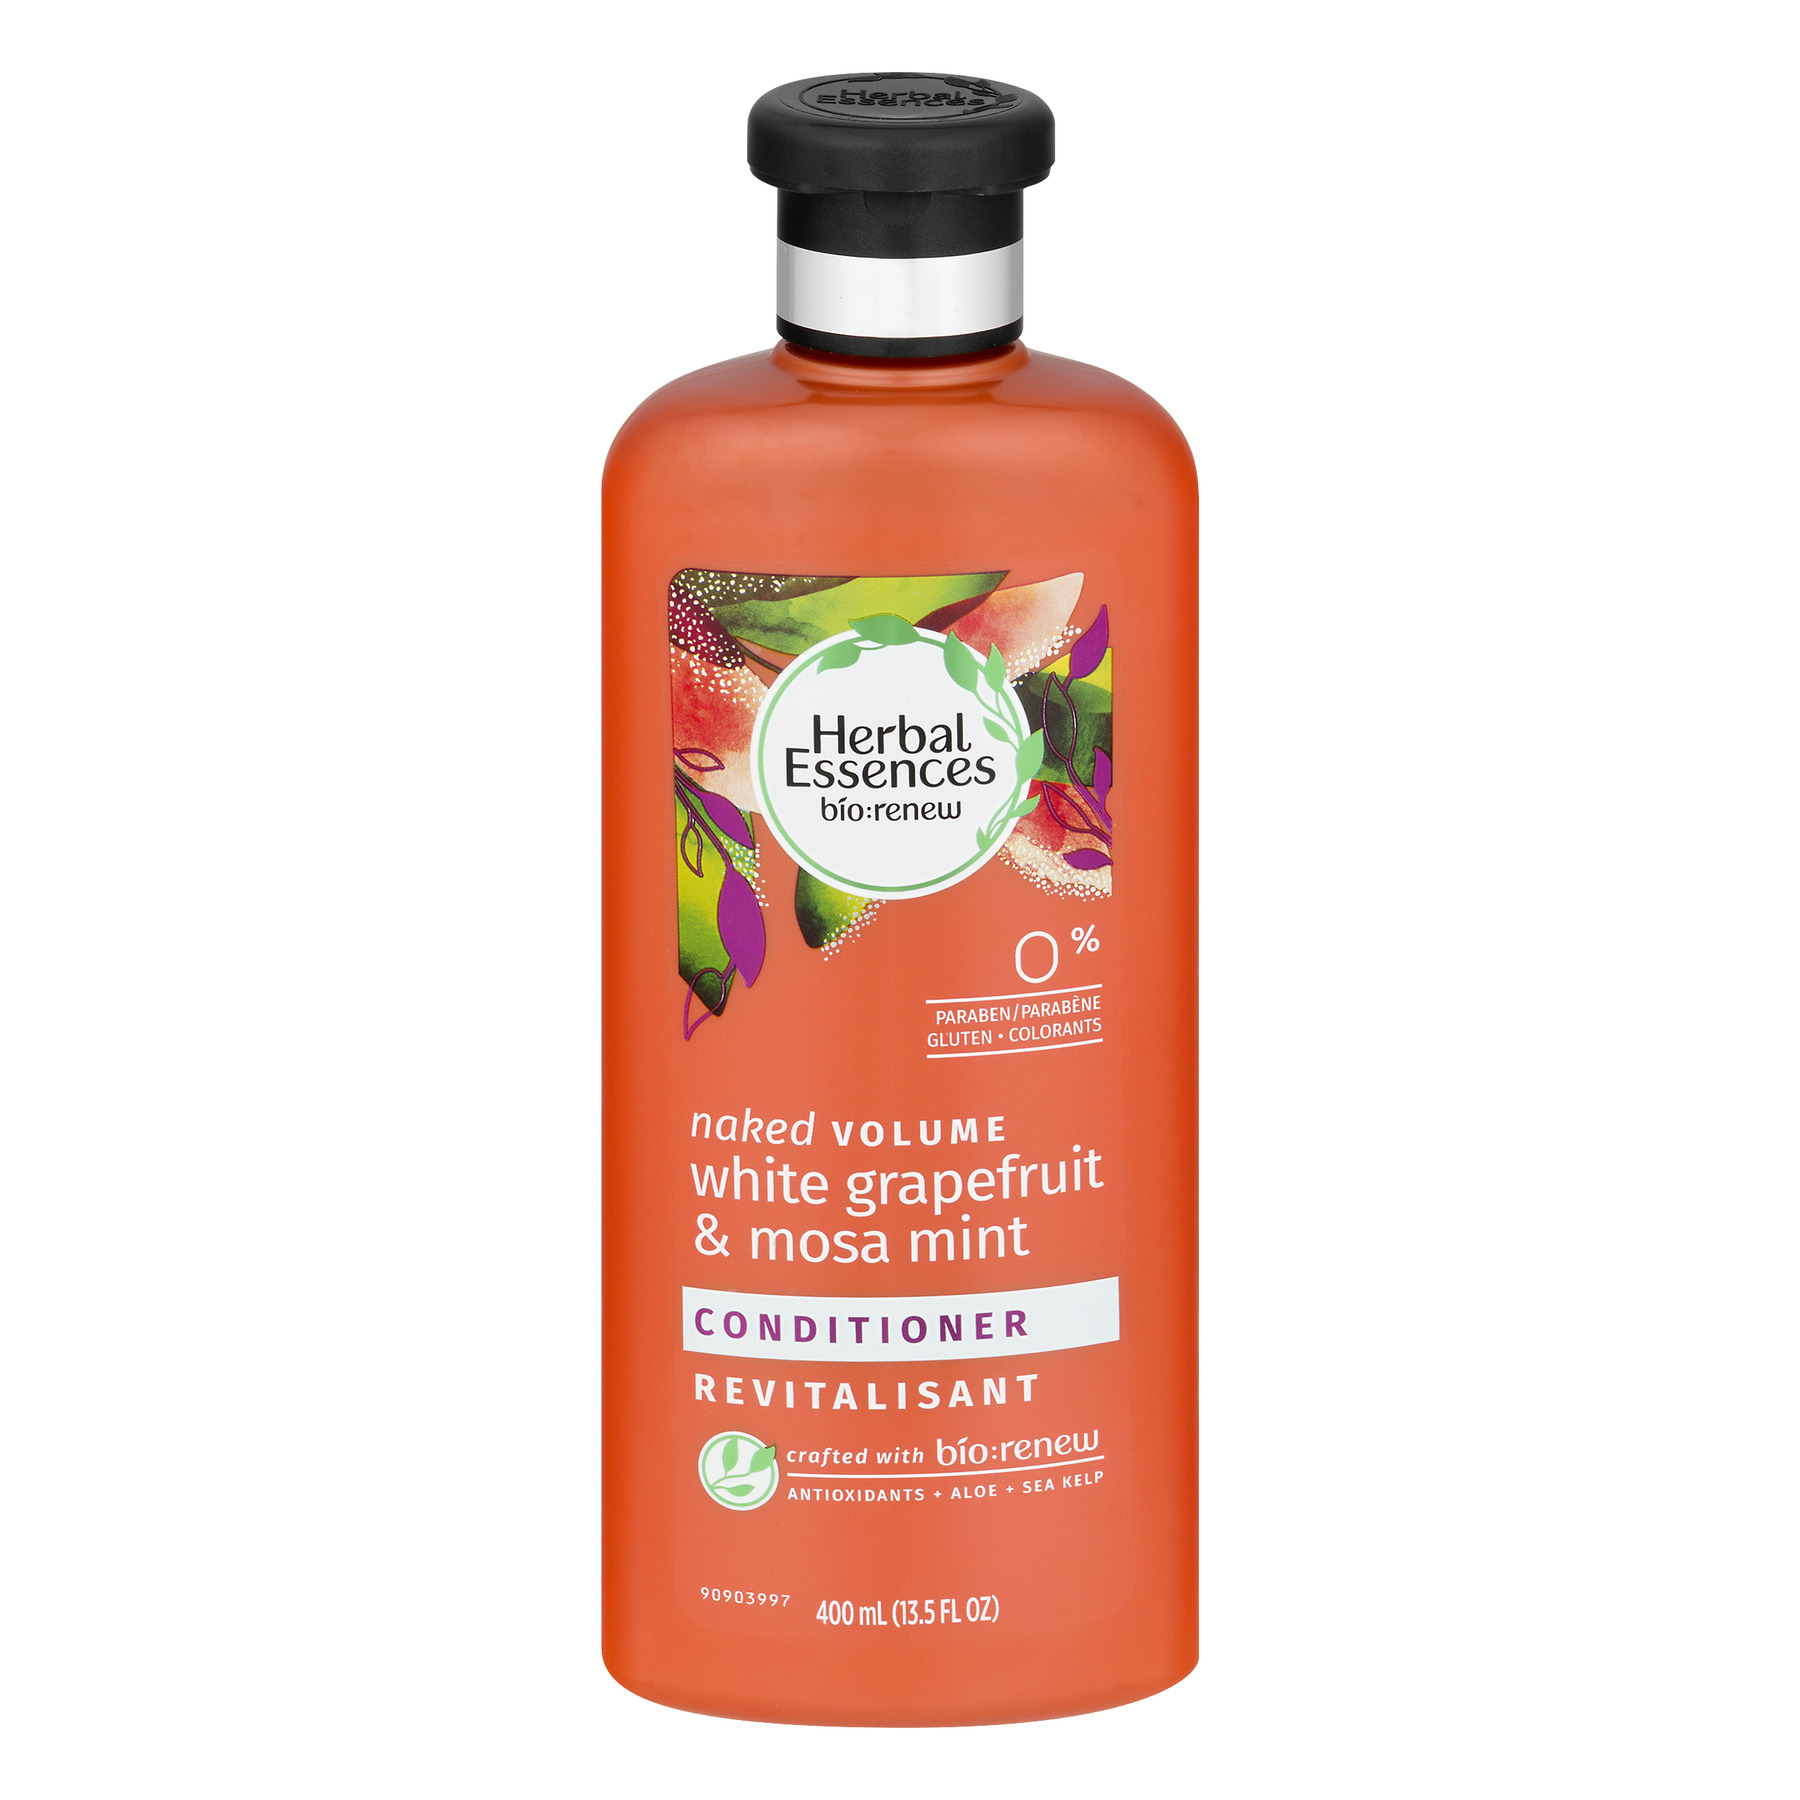 Herbal Essences Bio:renew White Grapefruit & Mosa Mint Naked Volume Conditioner, 13.5 Fl Oz